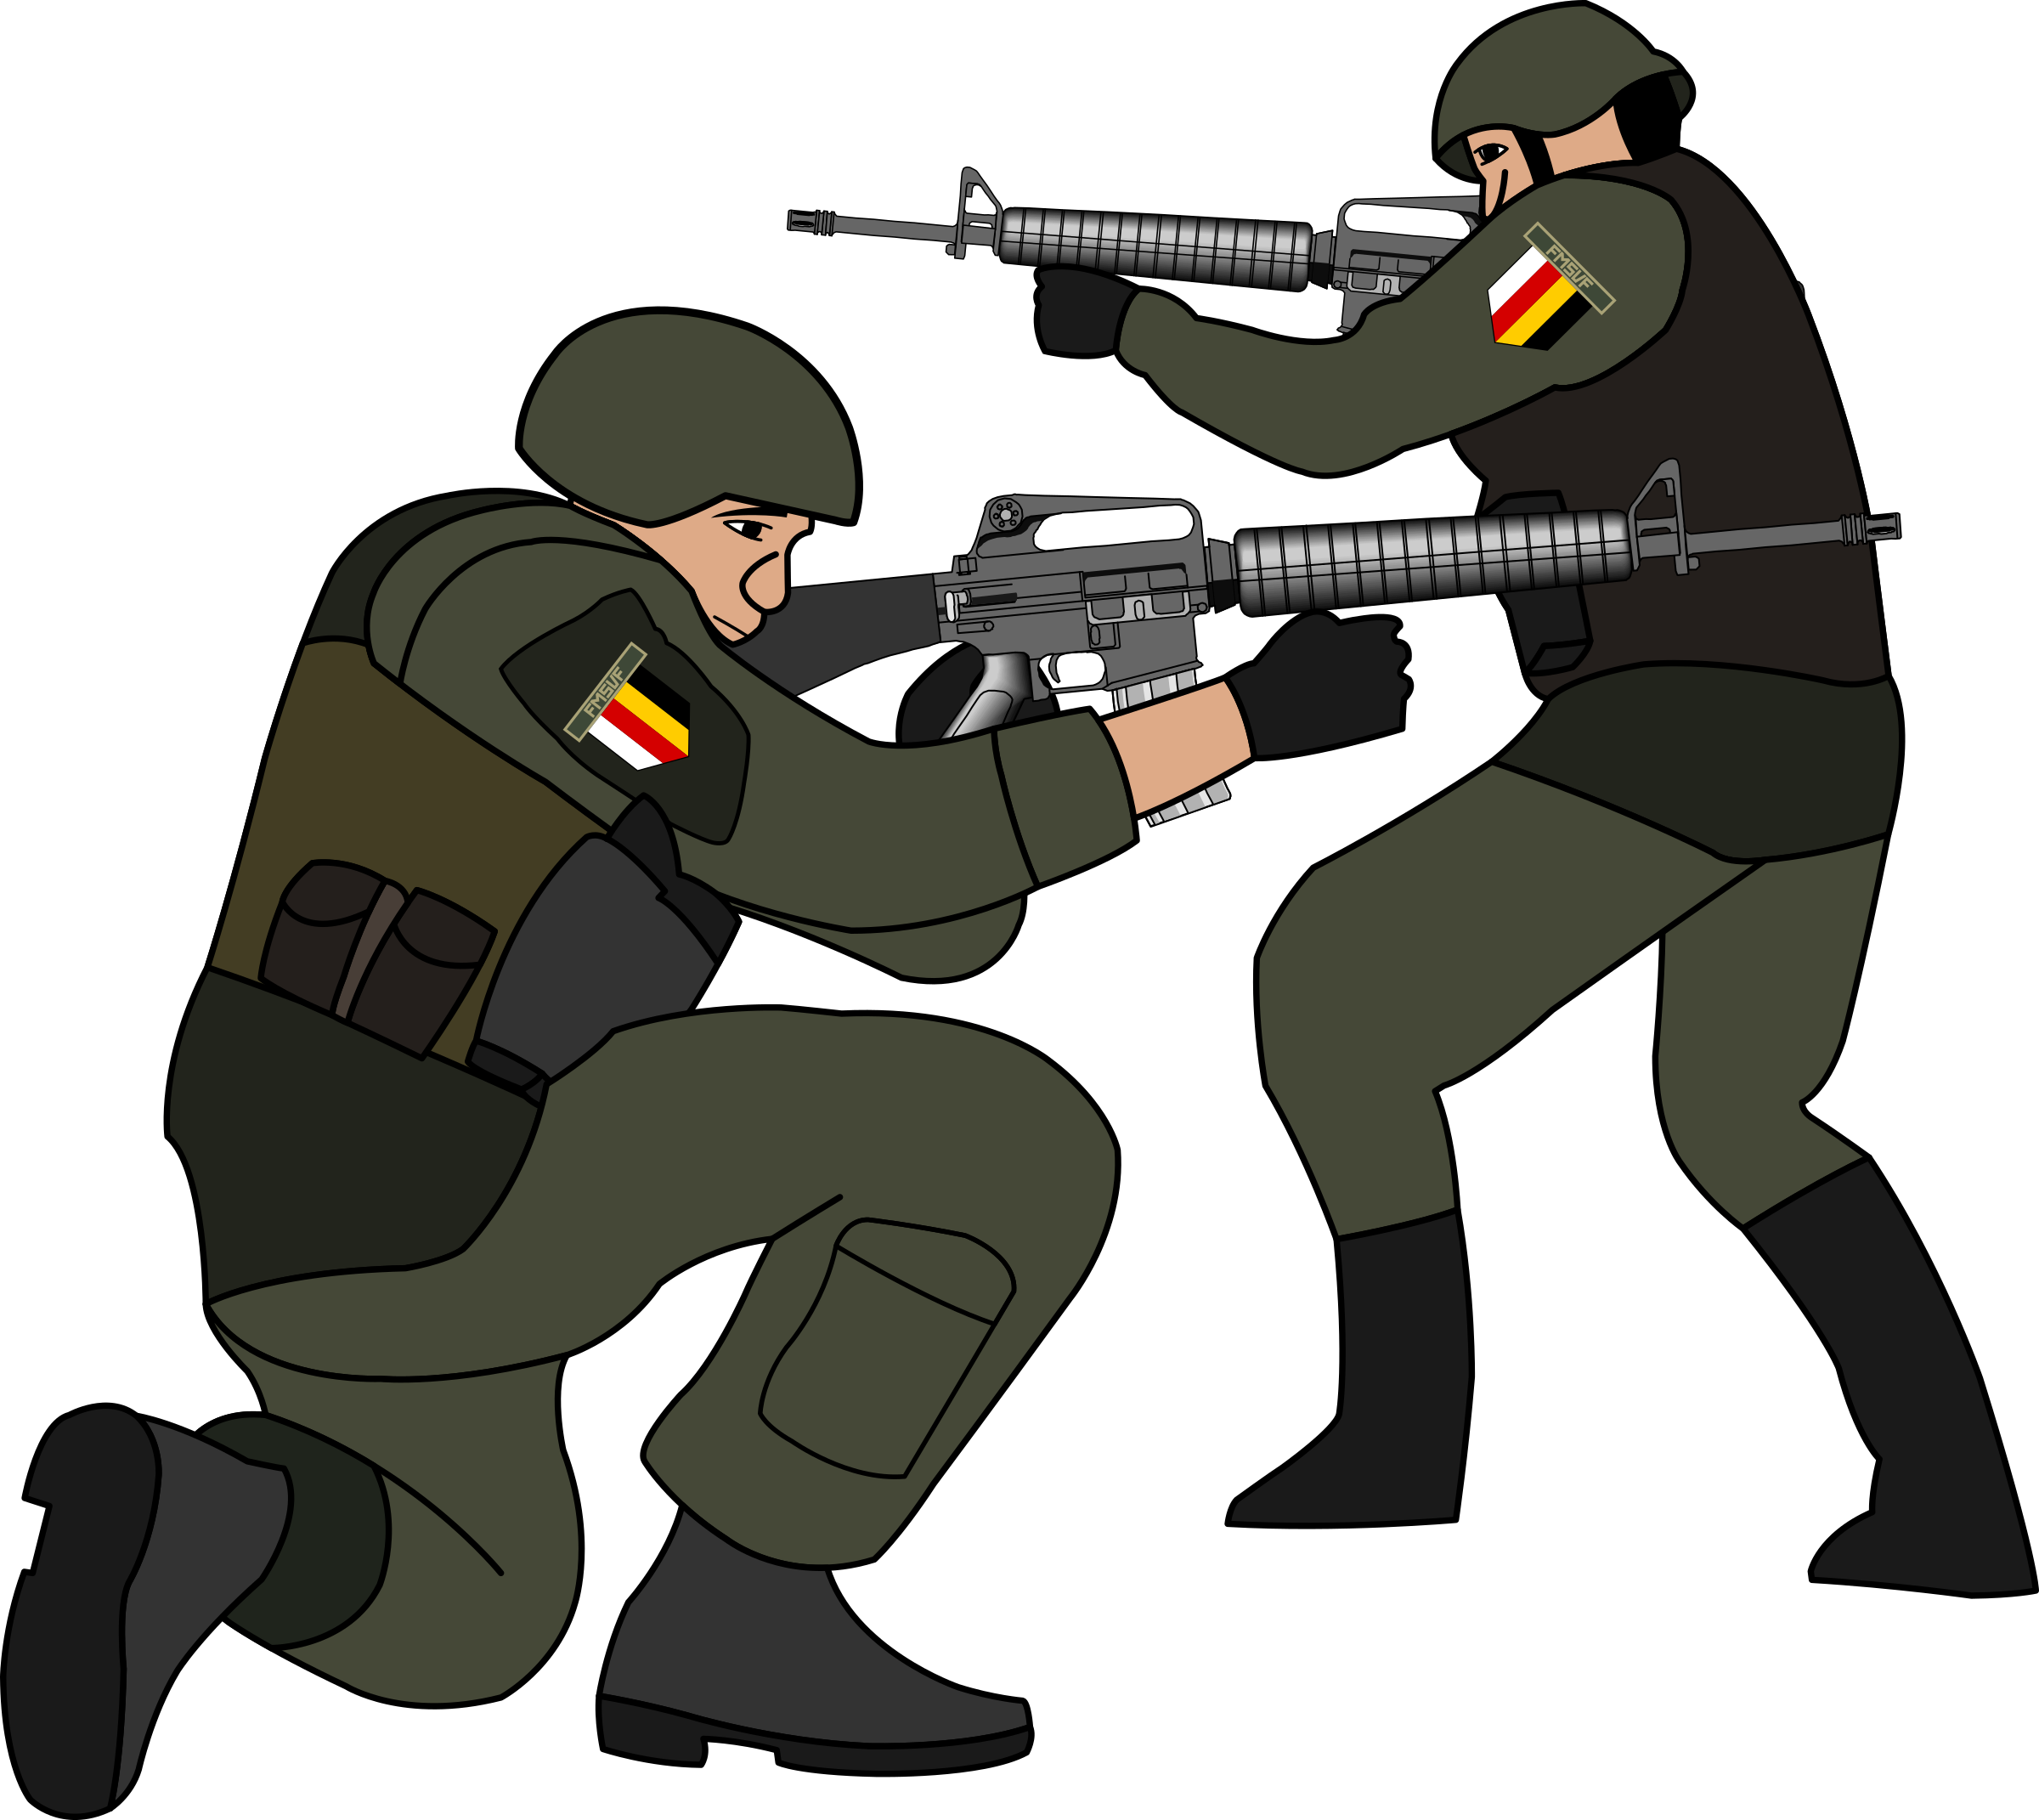 clipart soldiers in battle rh openclipart org soldier clipart silhouette soldier clip art images